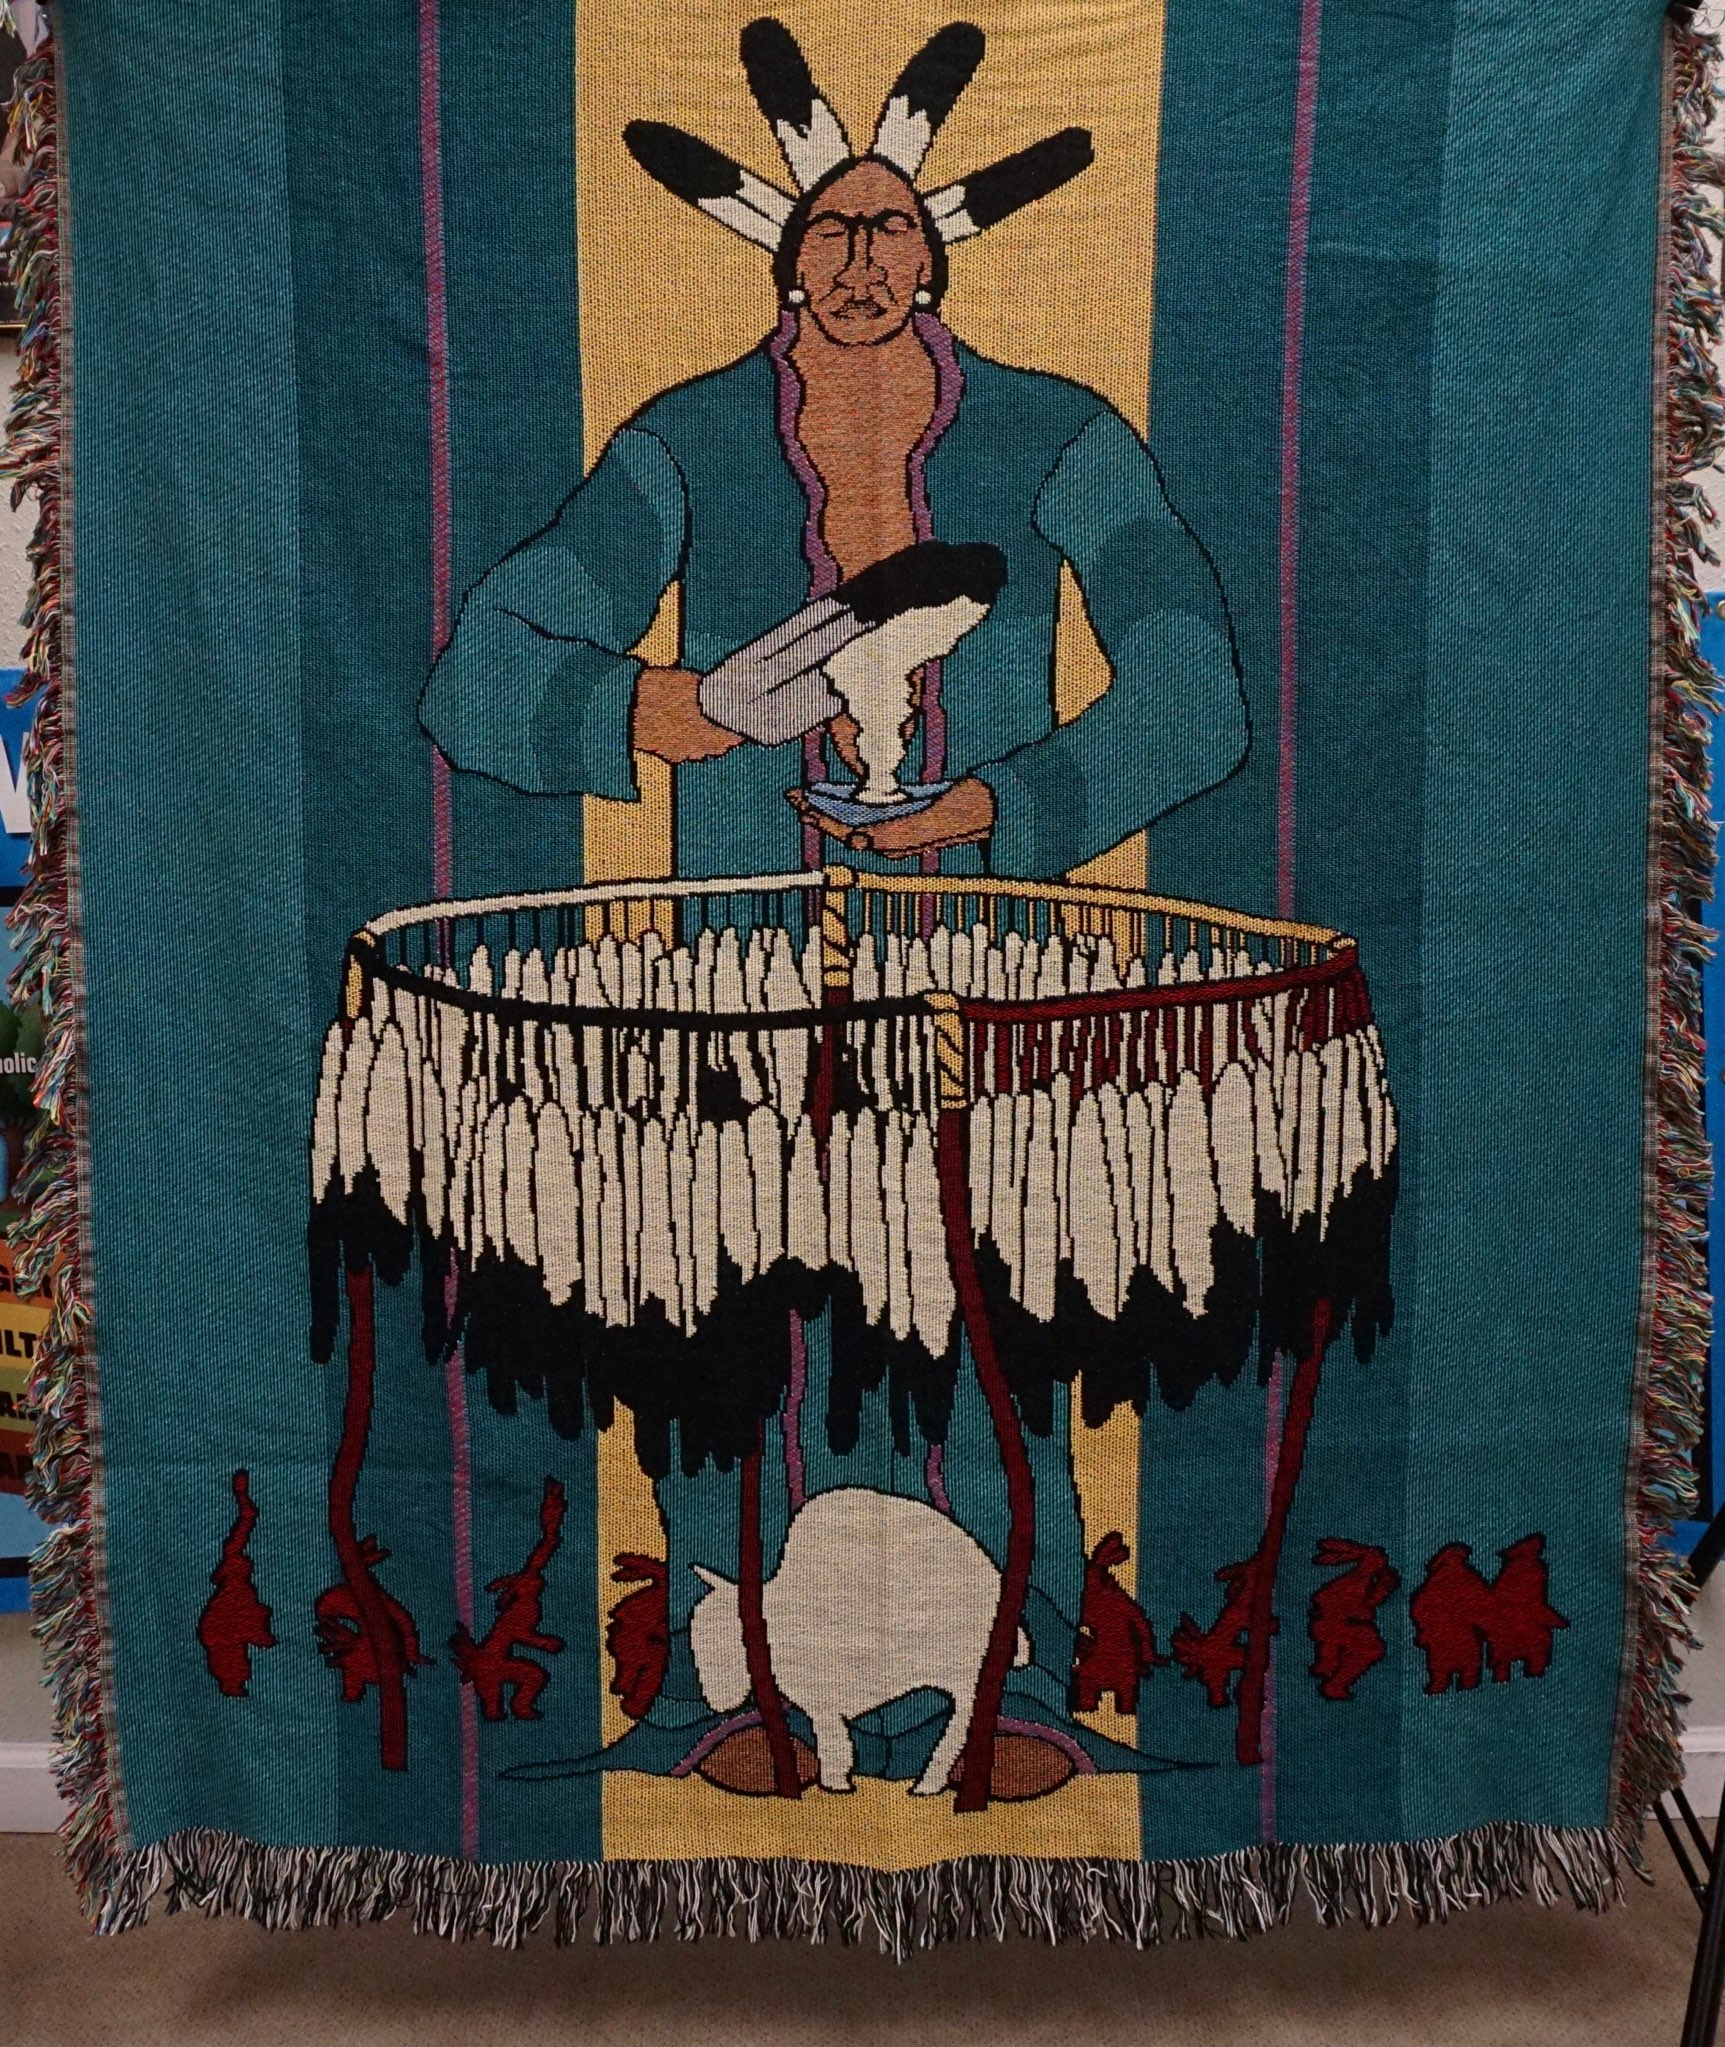 Hoopman Blanket